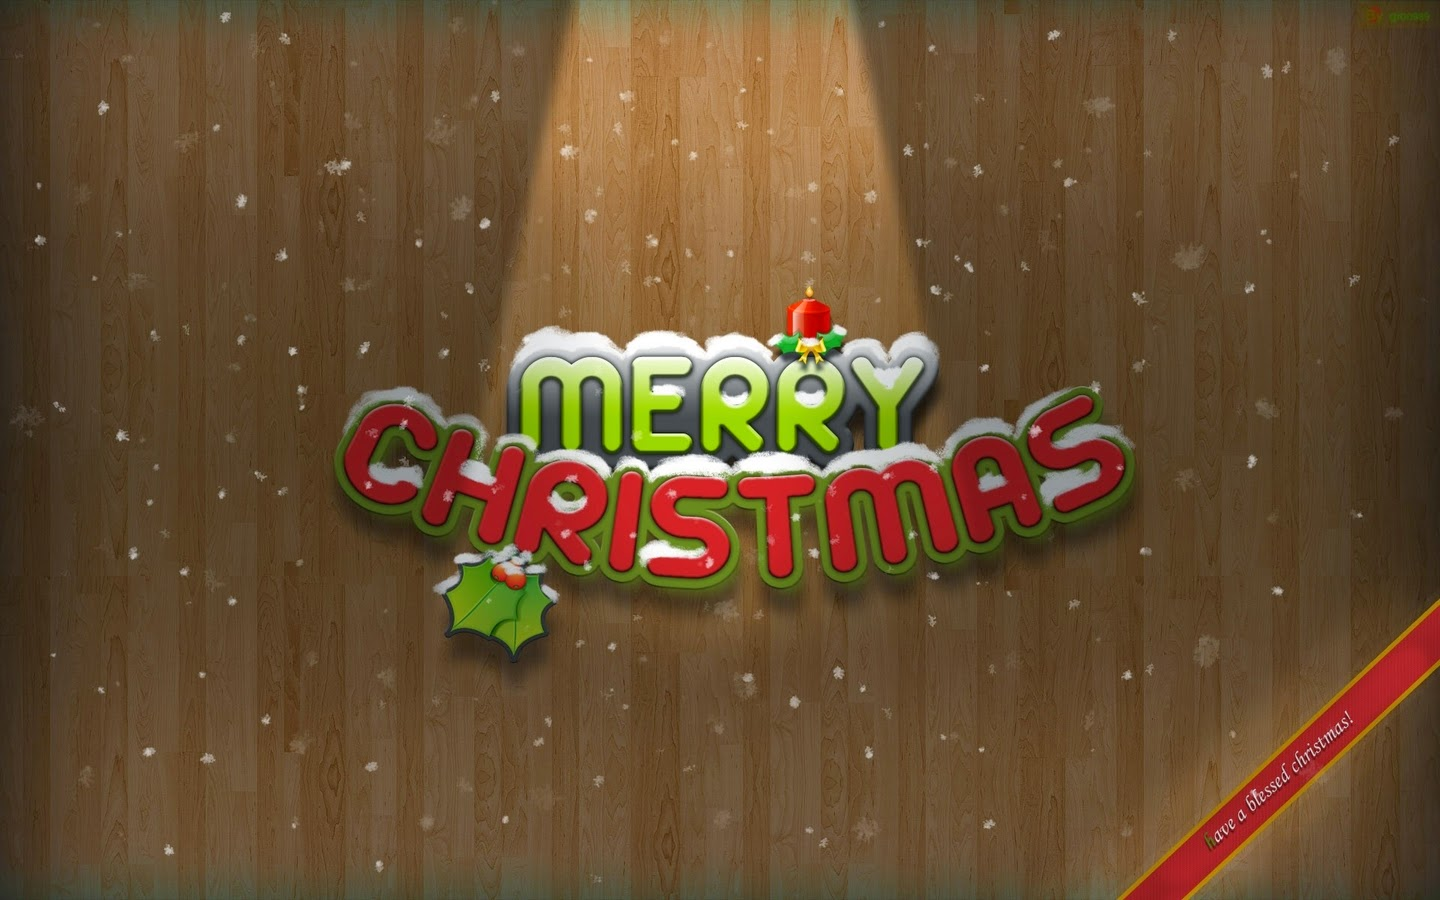 Cute Merry Christmas background Full HD 1080p Wallpapers 1440x900